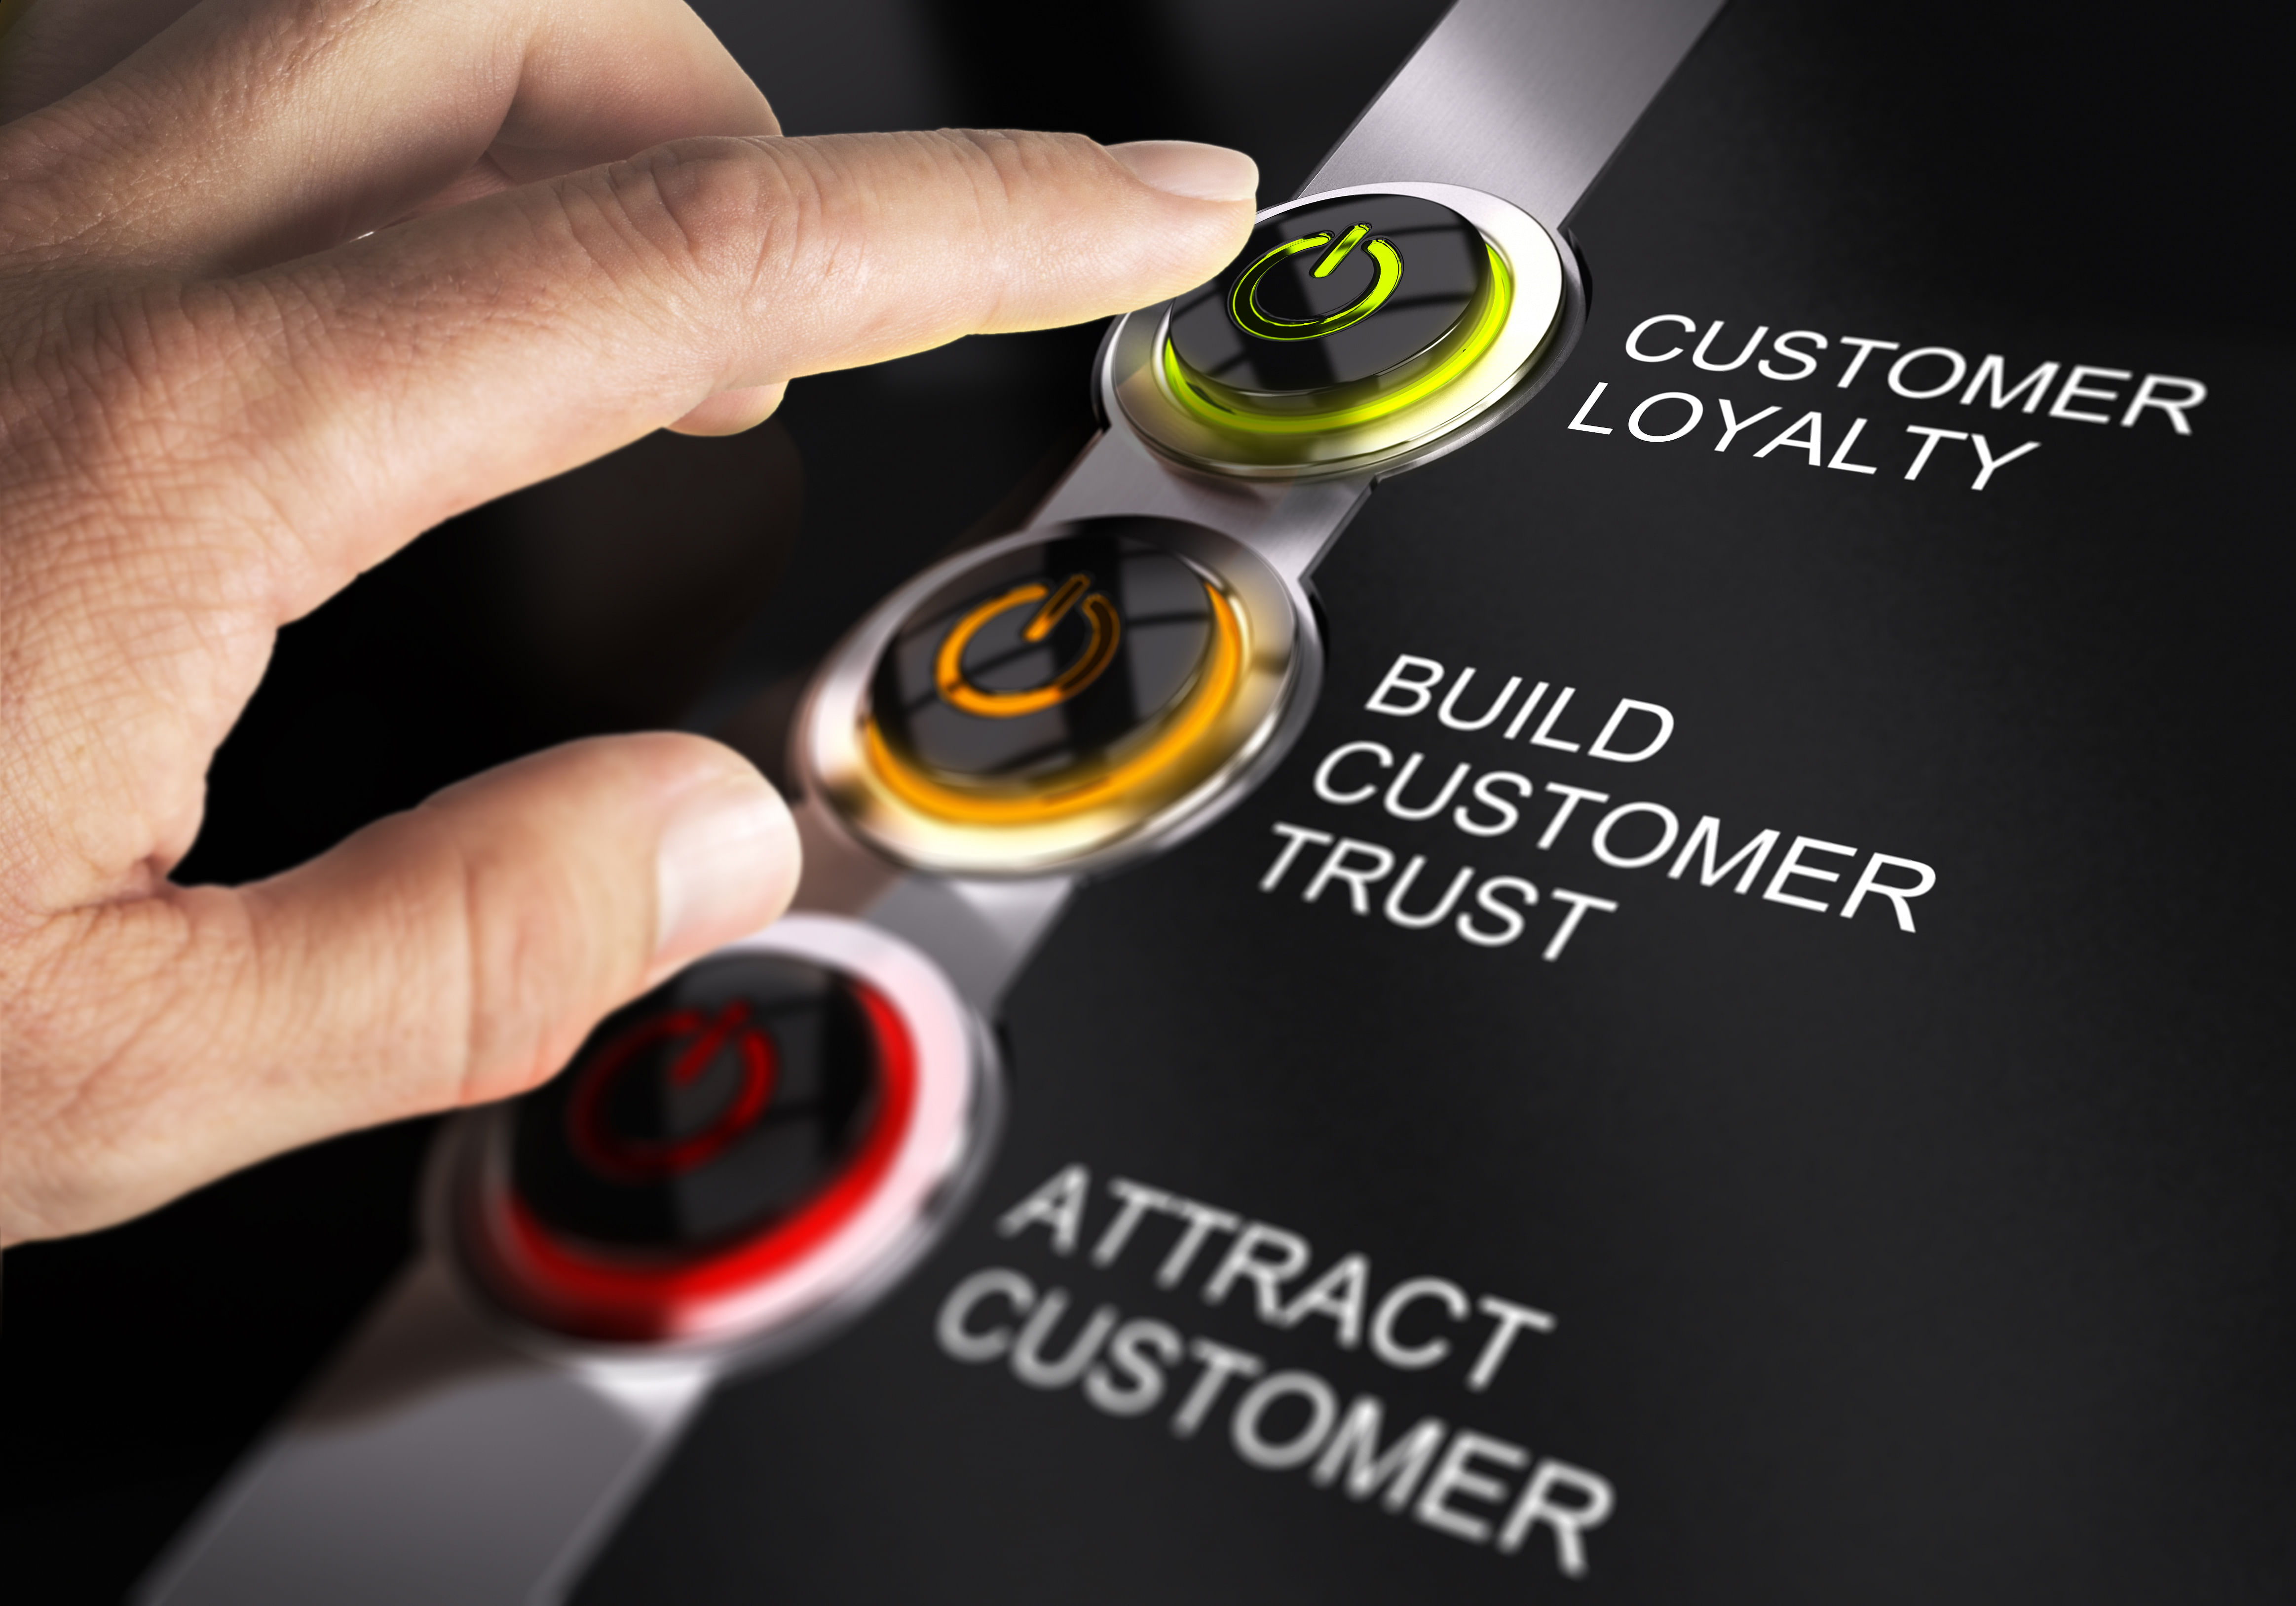 Growth Marketing is a strategic approach for long-term growth